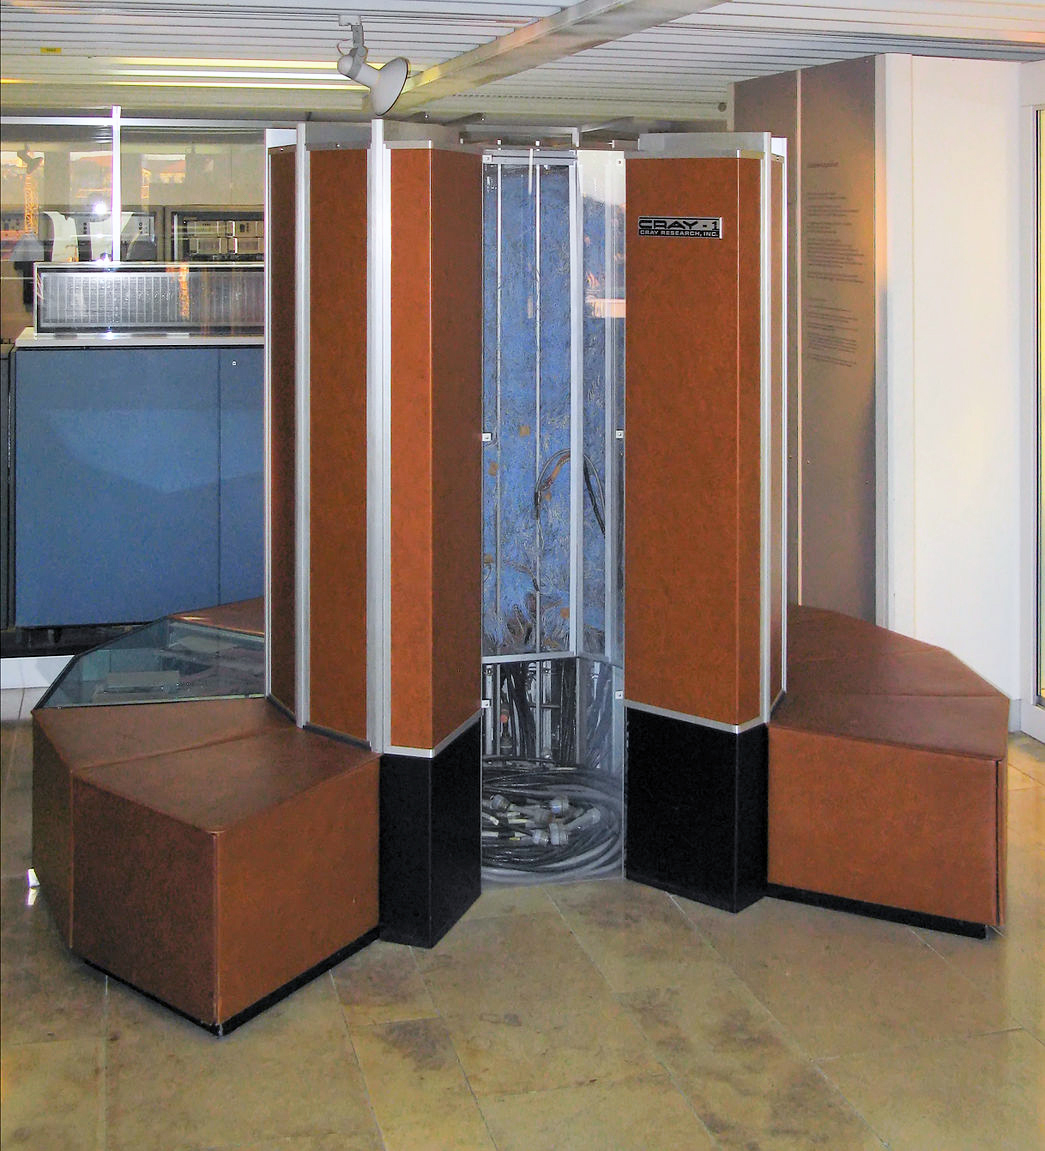 Picture of a Cray 1